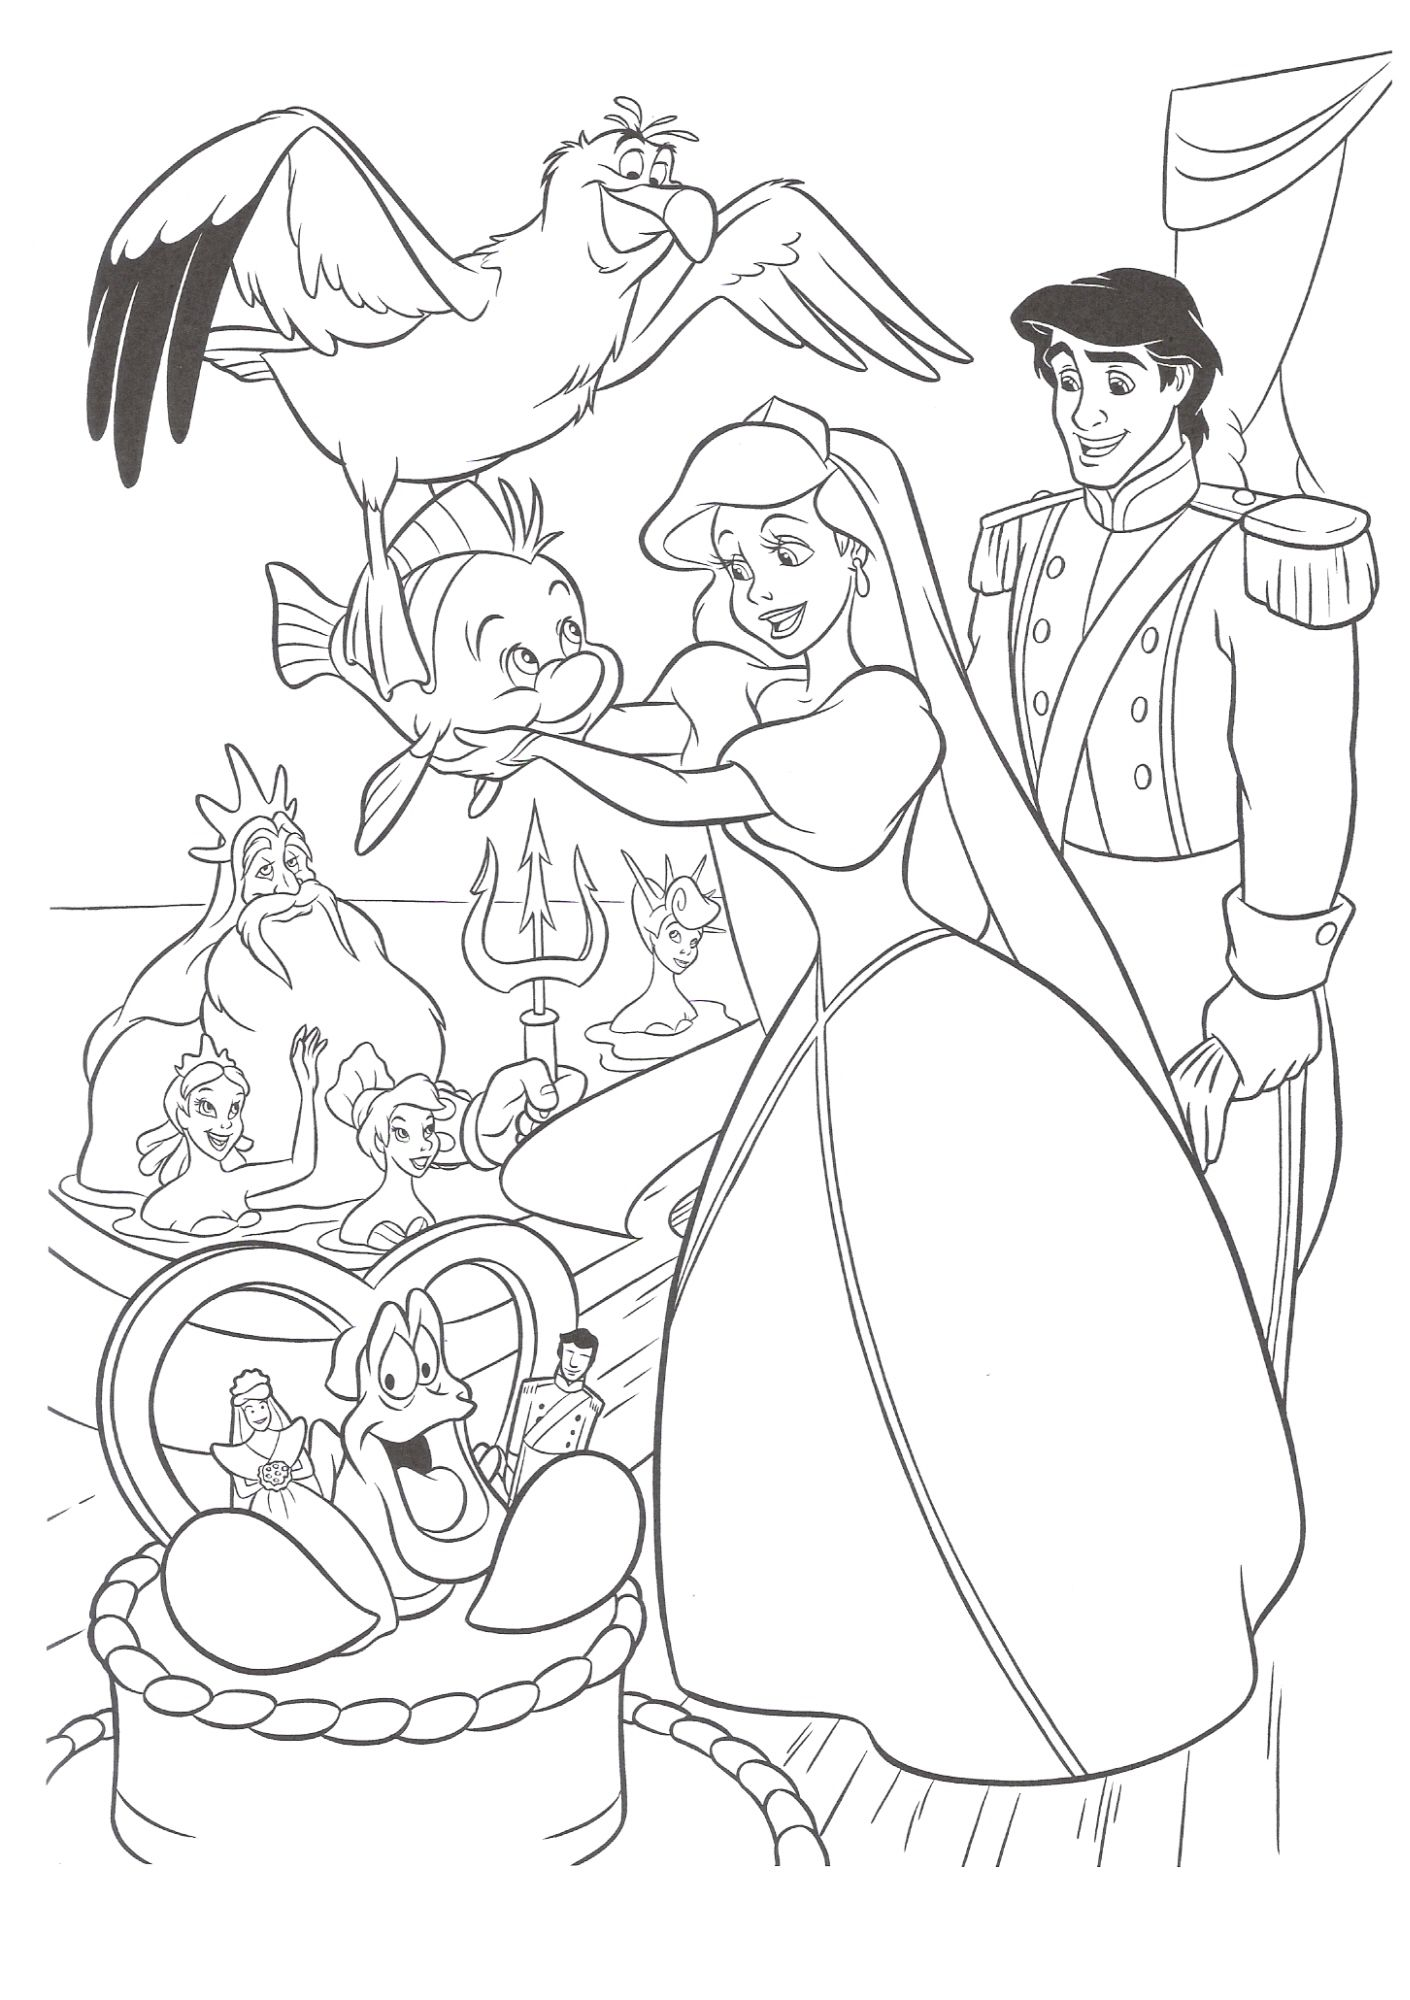 Disney The Little Mermaid Coloring Page | Coloring Pages | Pinterest ...